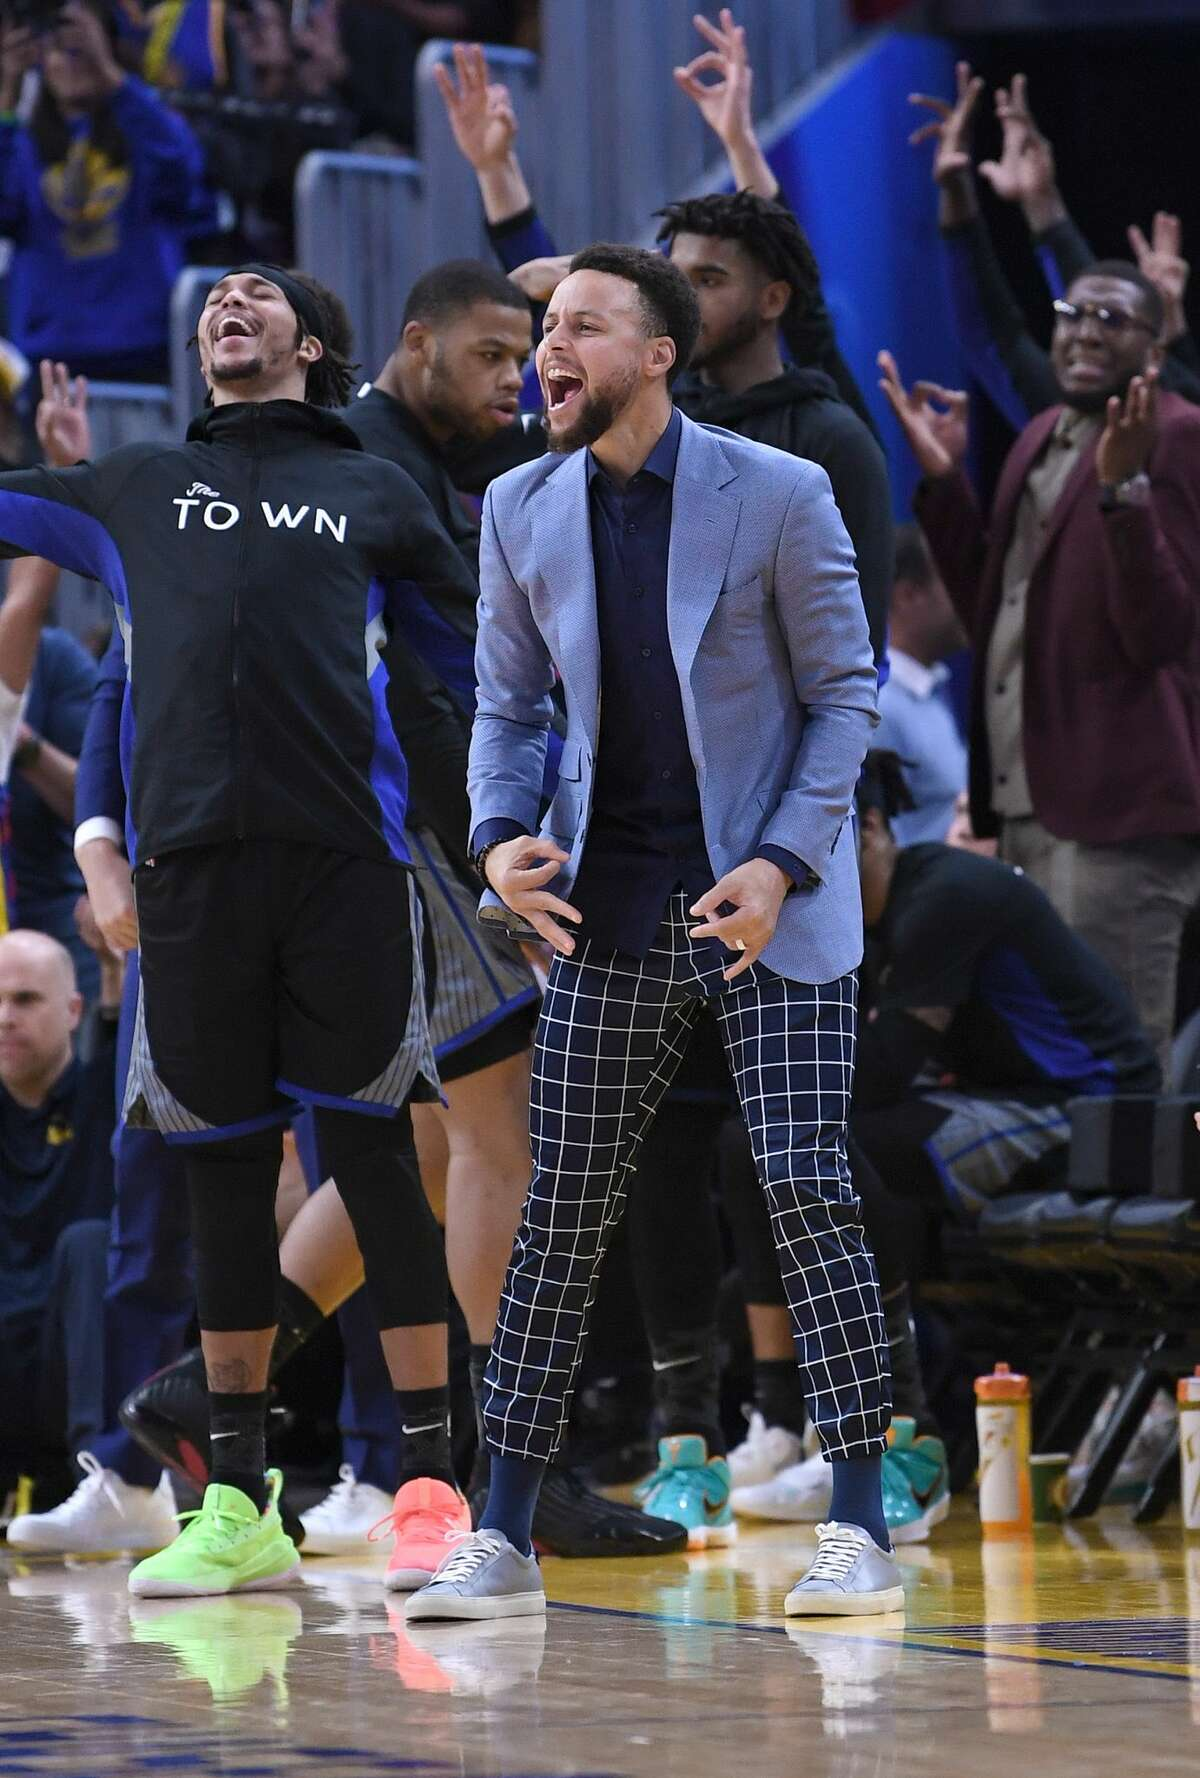 FILE PHOTO: Stephen Curry #30 of the Golden State Warriors celebrates off the bench after Draymond Green #23 made a three-point shot against the Houston Rockets during the second half of an NBA basketball game at Chase Center on December 25, 2019 in San Francisco, California. Curry was seen enthusiastically cheering on his team from the bench as the Warriors won their fourth game in part of a winning streak.